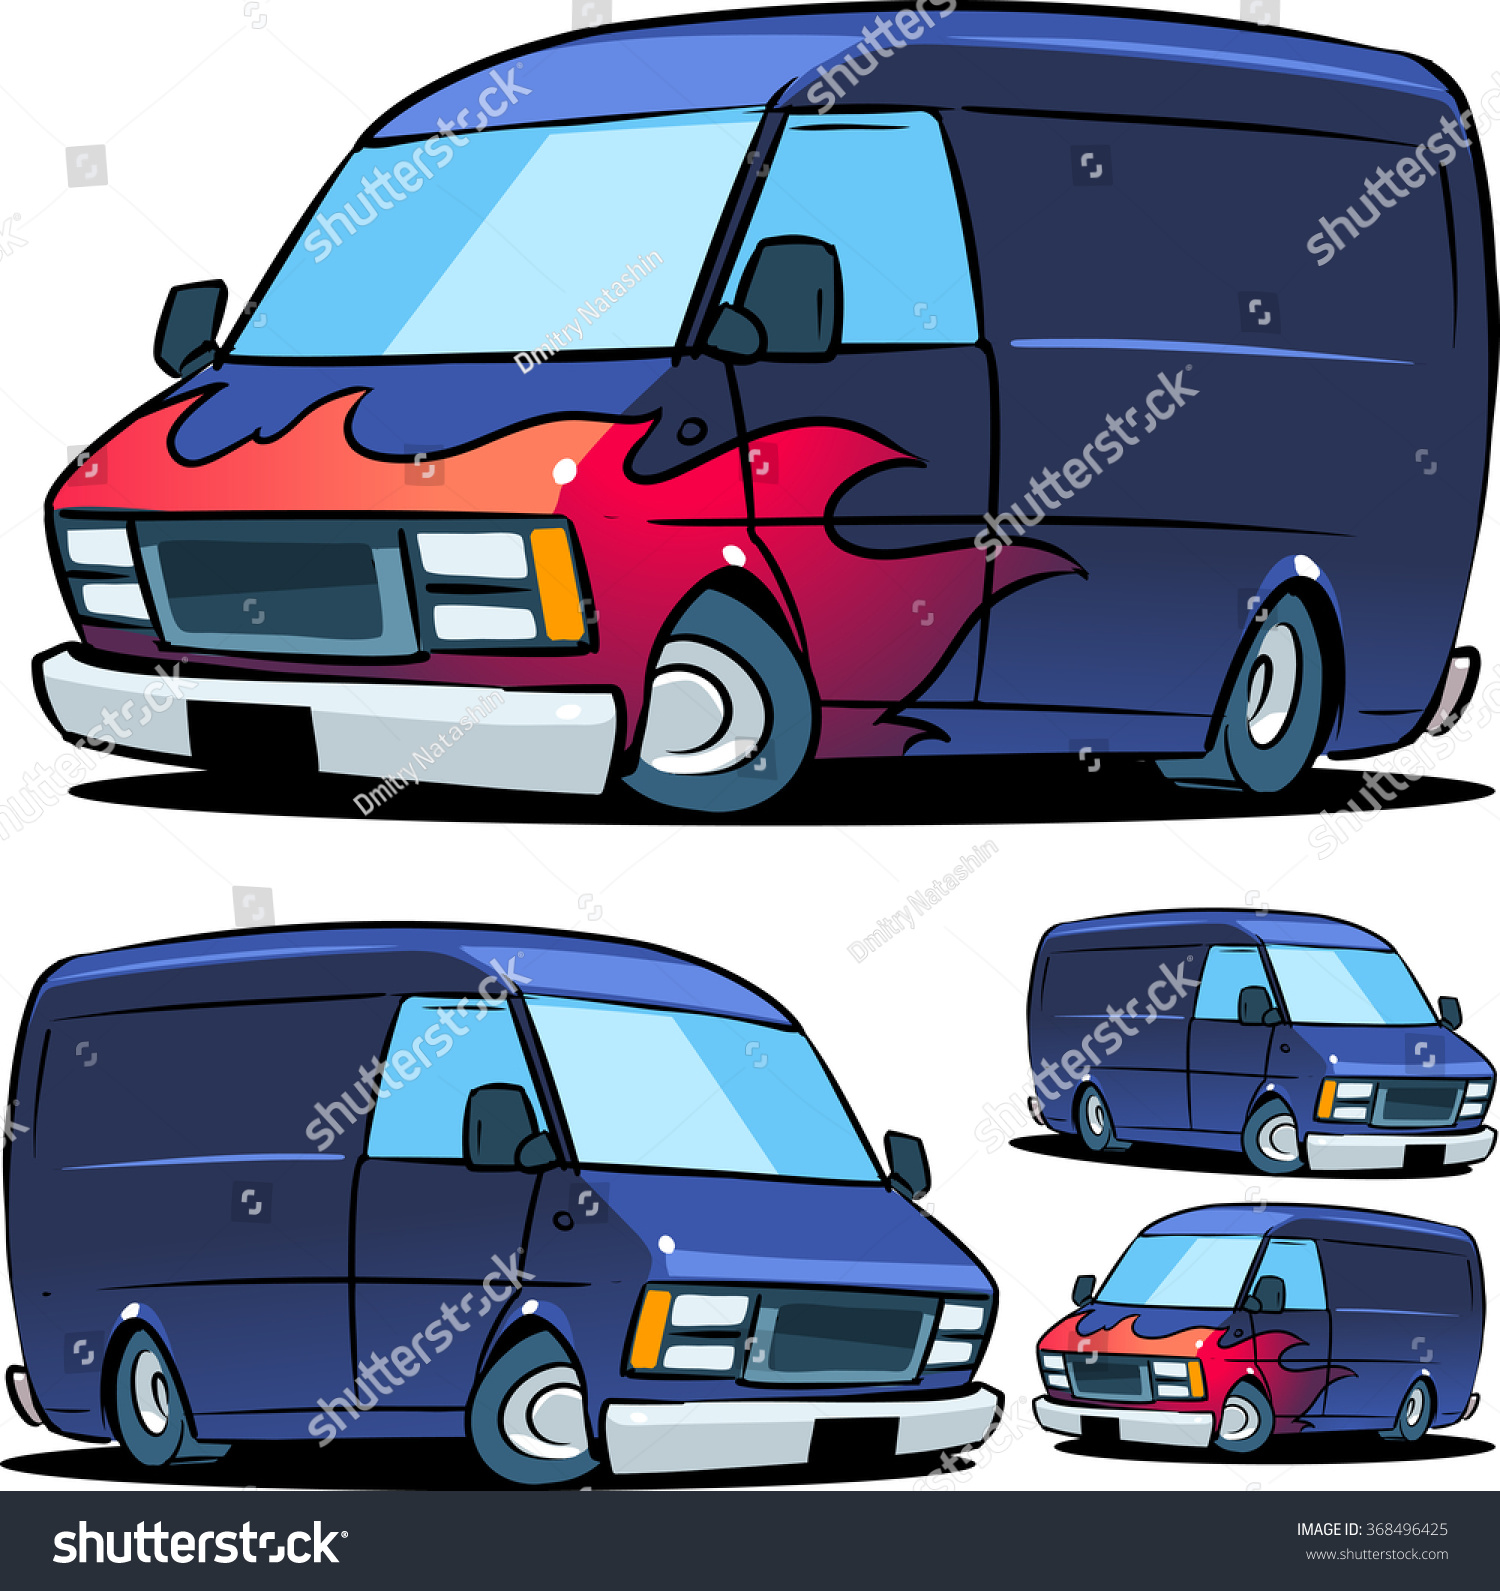 Van Clipart Vector Illustration Stock Vector Royalty Free 368496425 Over 49,145 van pictures to choose from, with no signup needed. https www shutterstock com image vector van clipart vector illustration 368496425